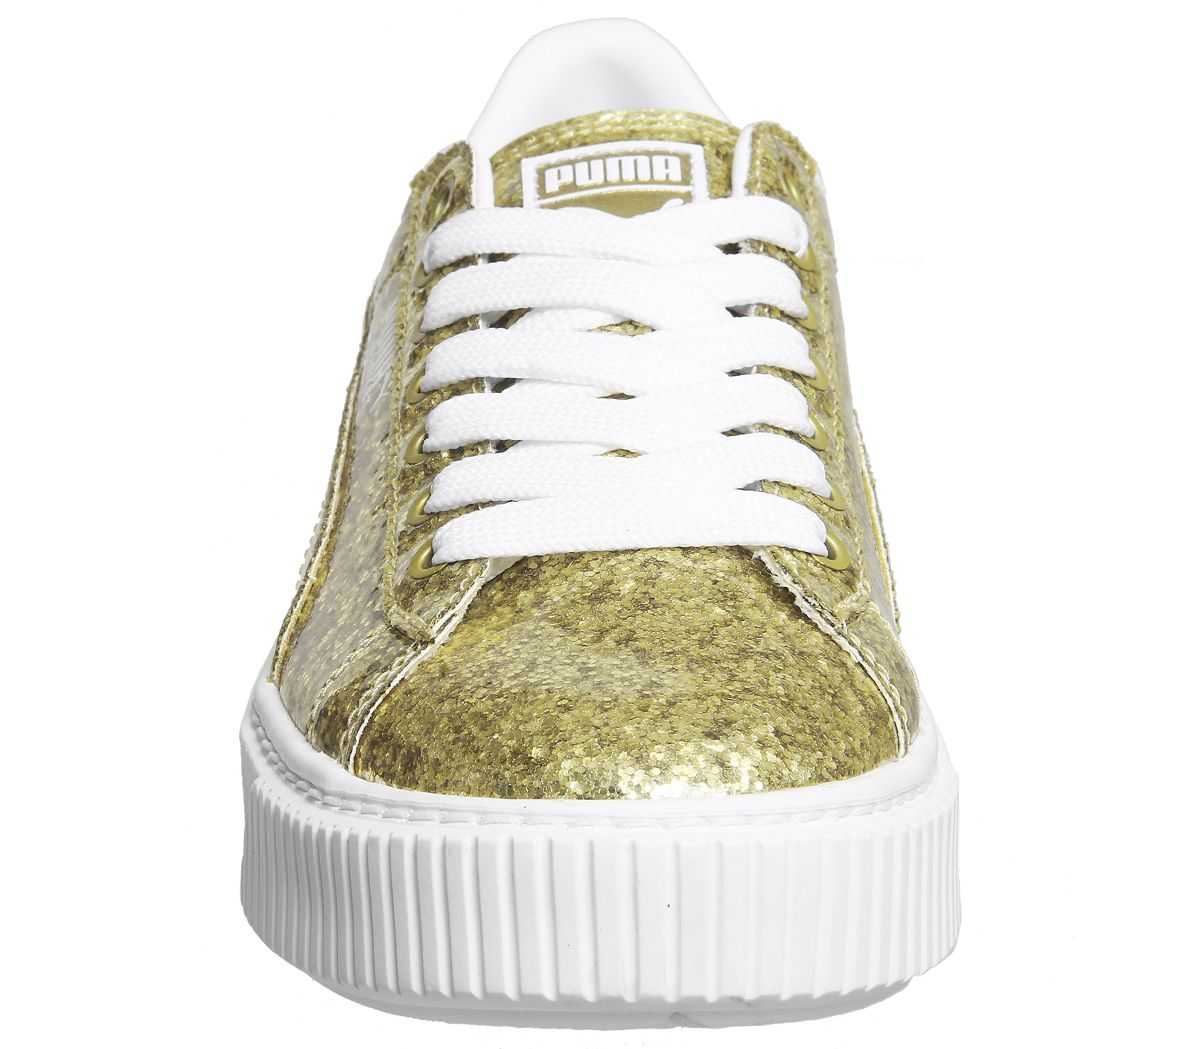 d2e57334dcbf20 Sentinel Womens Puma Basket Platform Trainers Gold Glitter White Trainers  Shoes